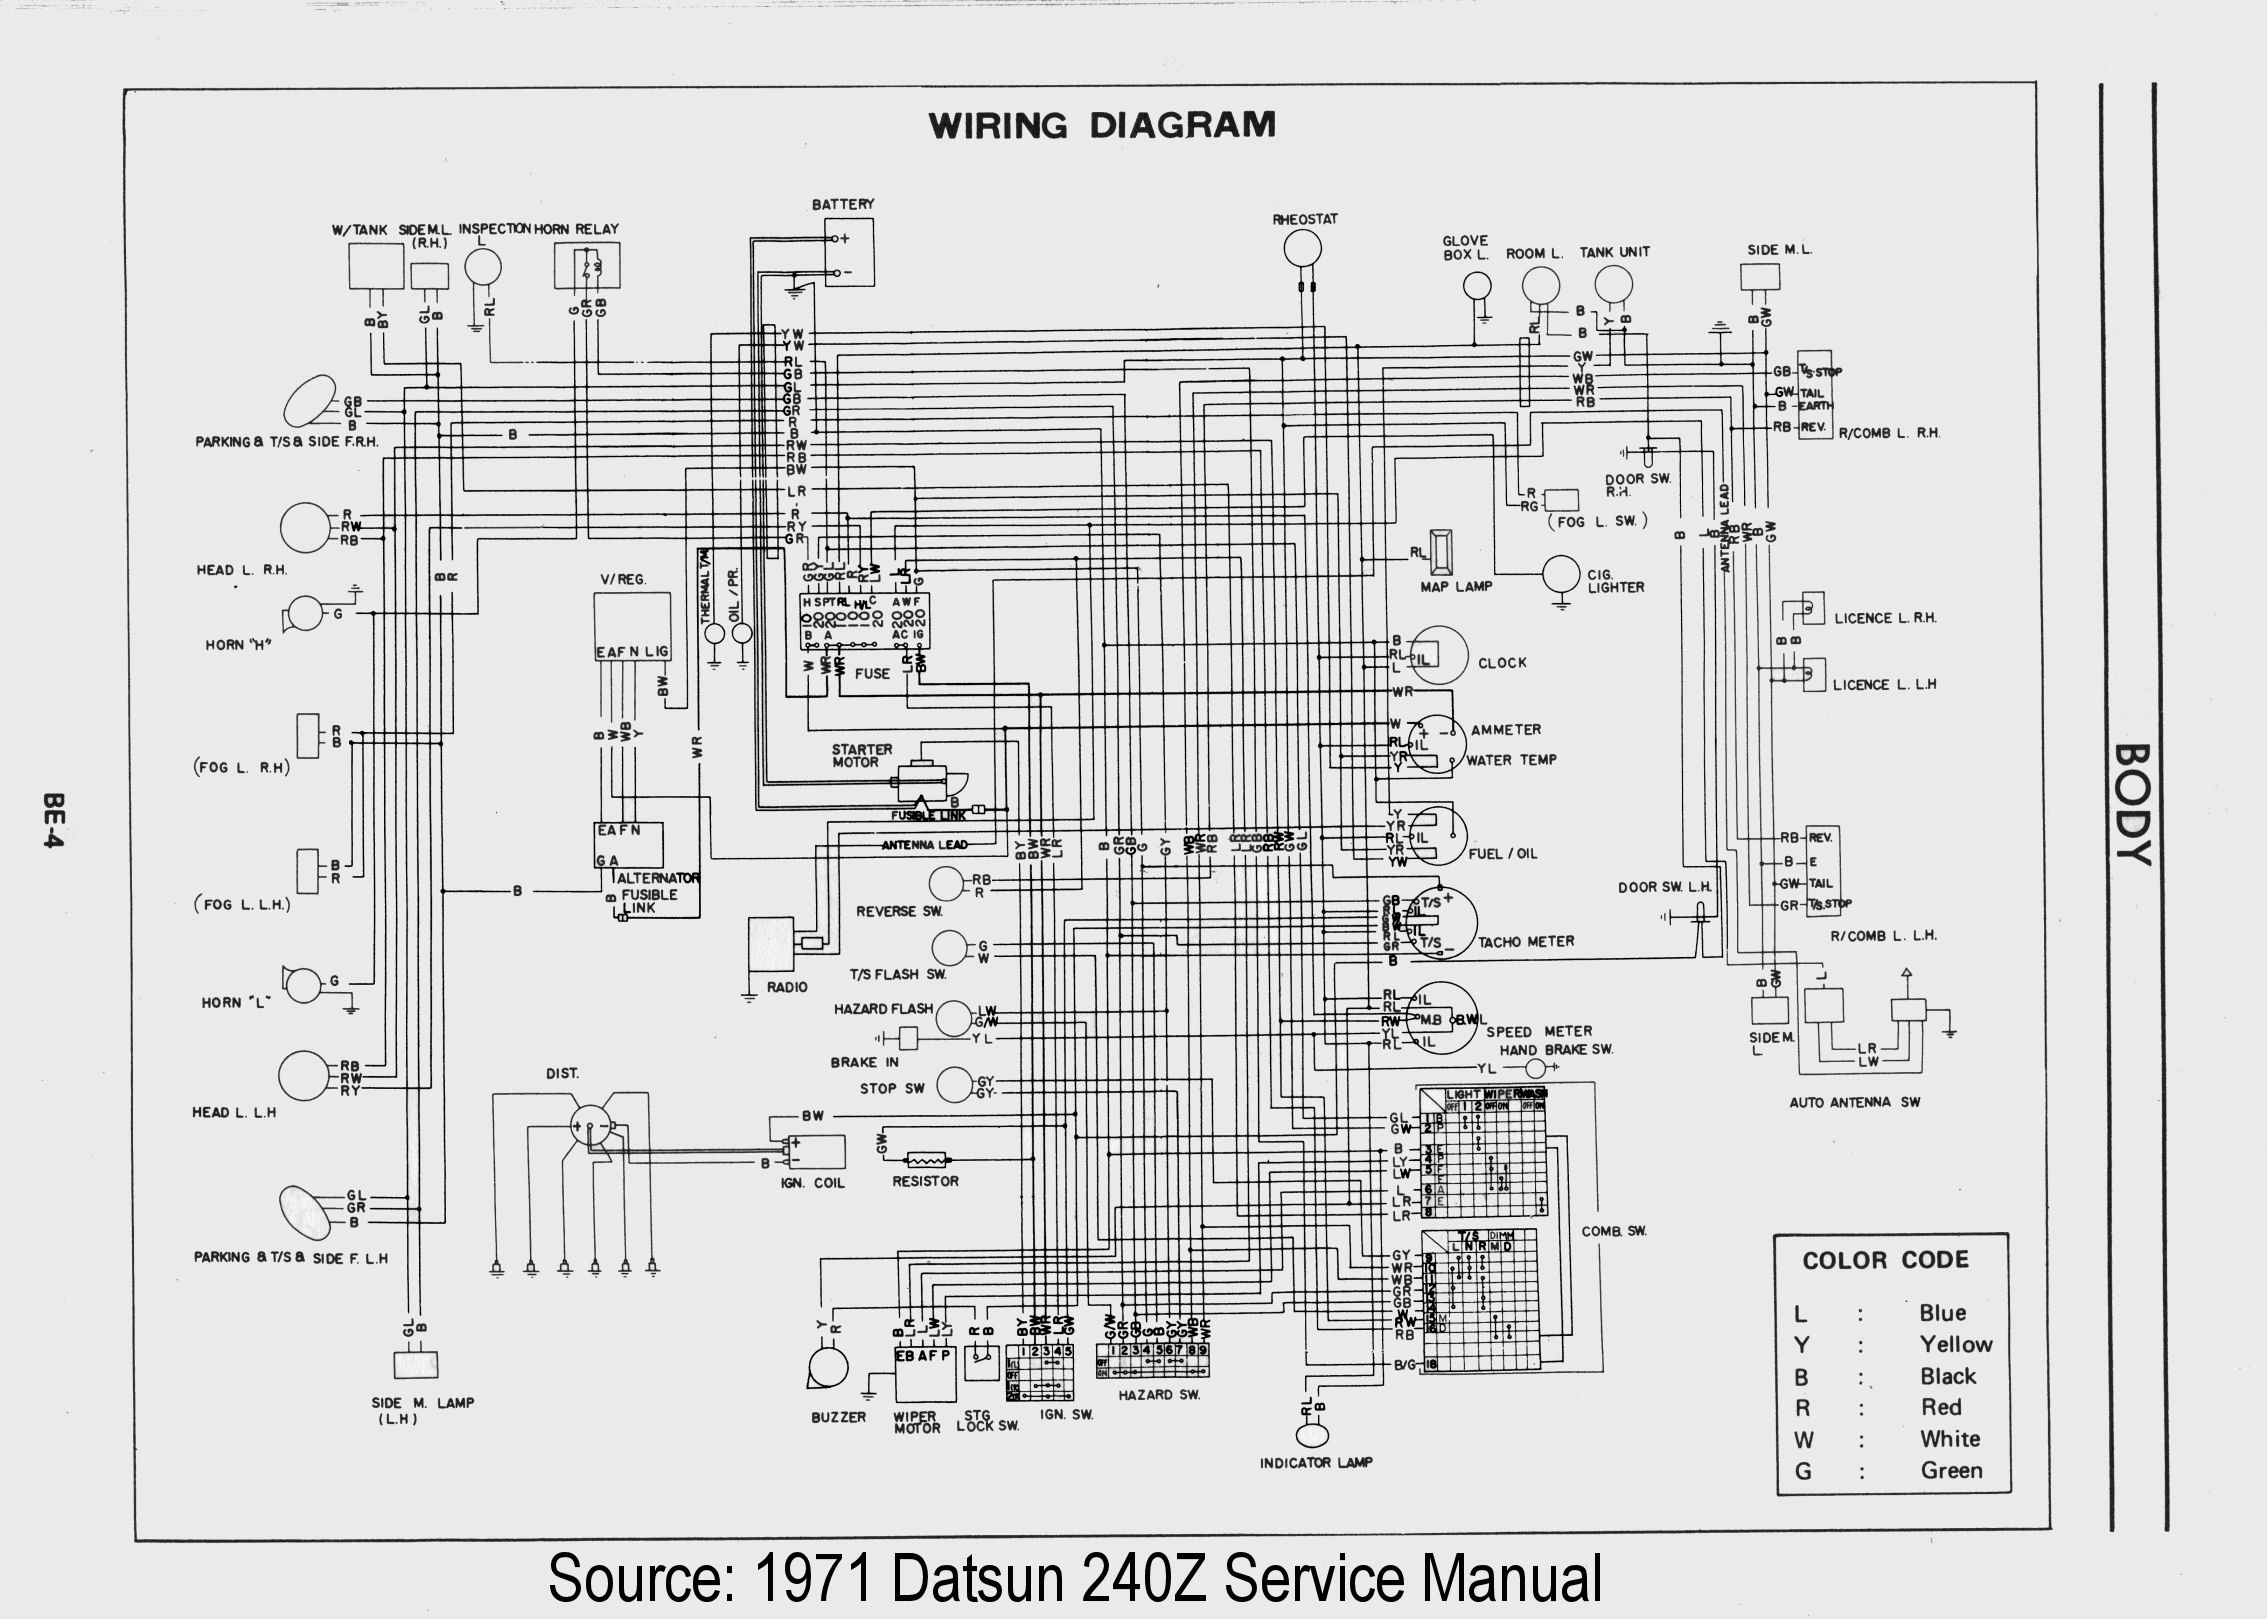 datsun 280z wiring diagram wiring diagram. Black Bedroom Furniture Sets. Home Design Ideas